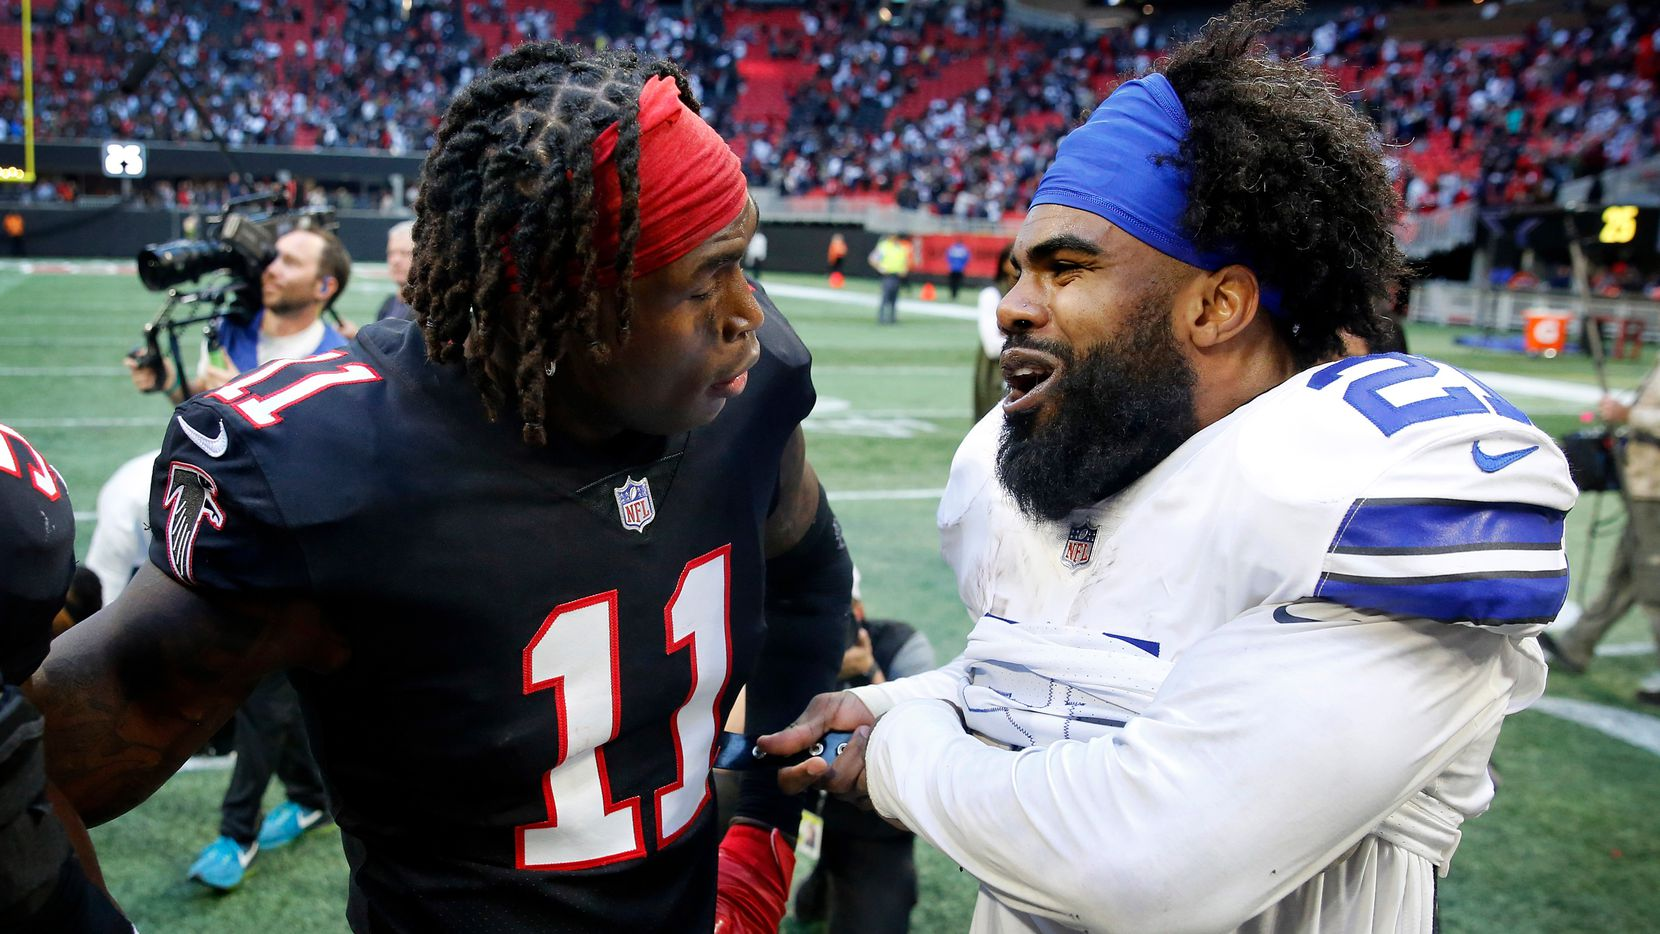 Dallas Cowboys running back Ezekiel Elliott (21) and Atlanta Falcons wide receiver Julio Jones (11) visit after the game at Mercedes-Benz Stadium in Atlanta, Sunday, November 18, 2018. The Cowboys pulled out a 22-19 win.